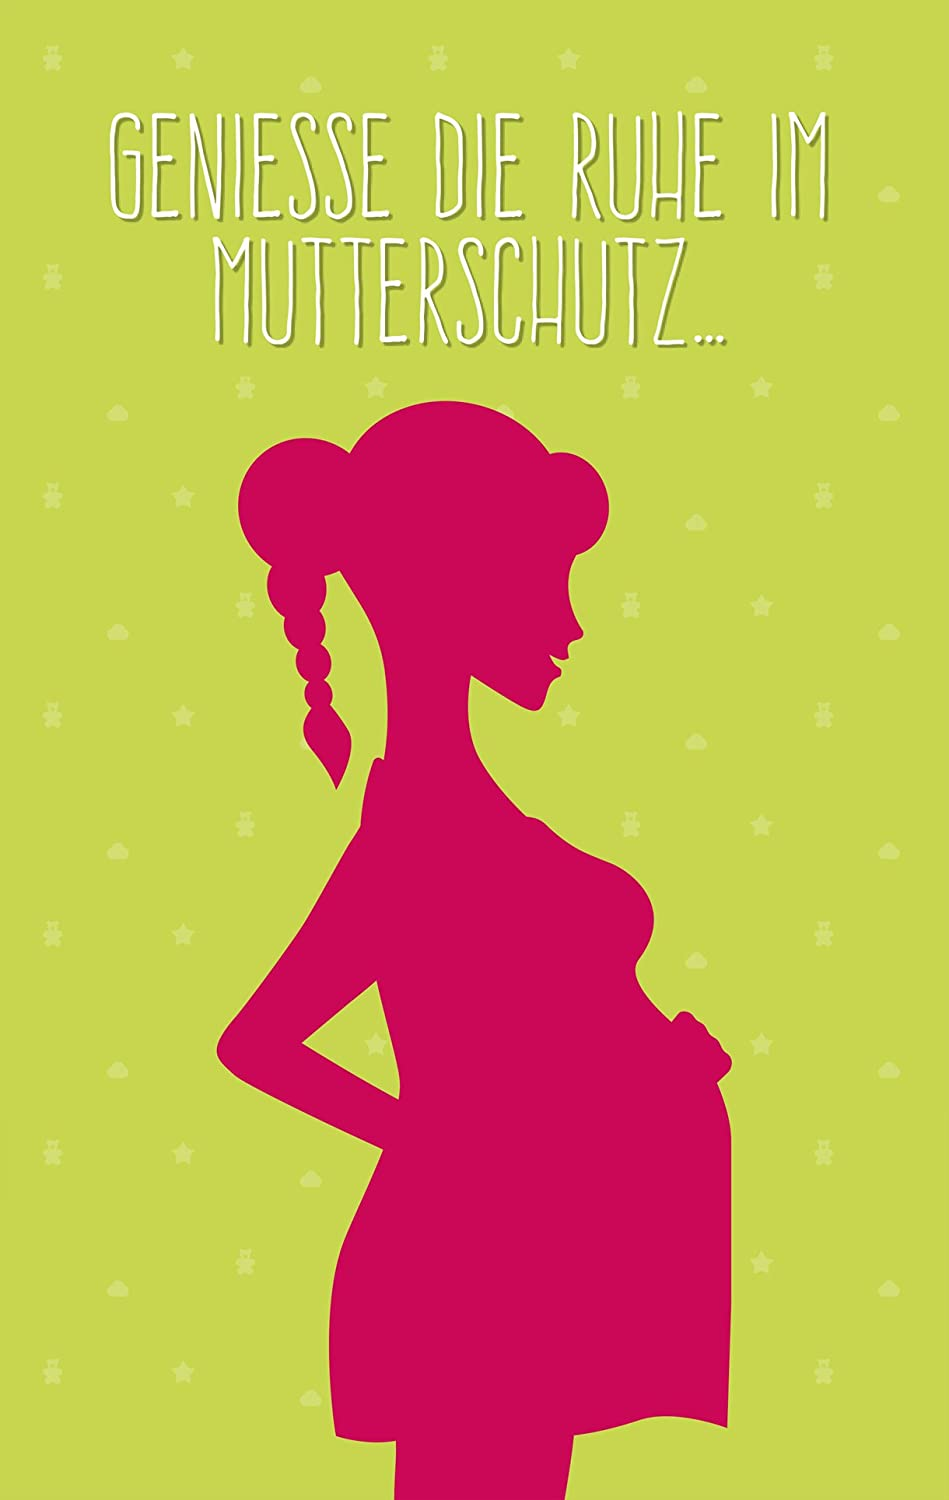 Wunsche abschied babypause